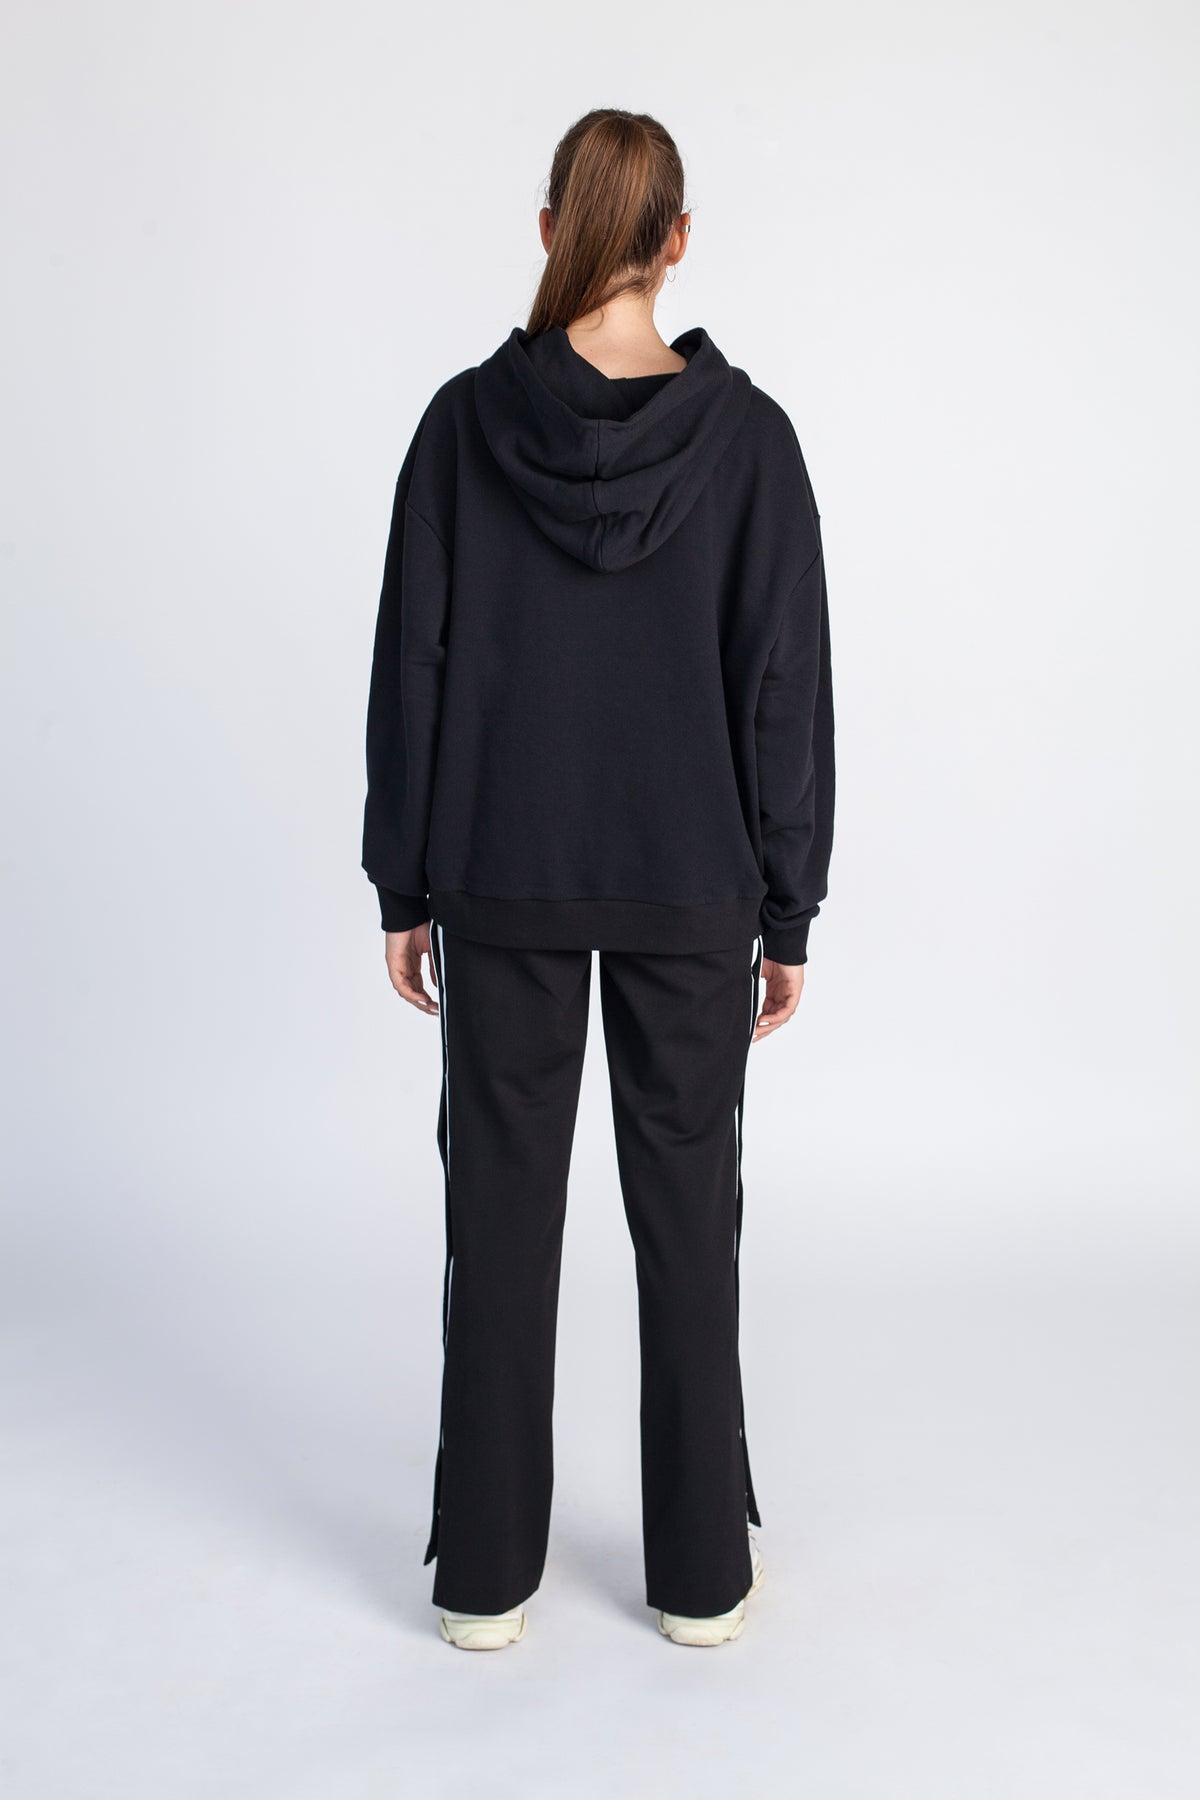 FRENCH-SERIES-LOVE-Black-oversize-hoodie-with-wording-jumper-le-slap-clothing.jpg